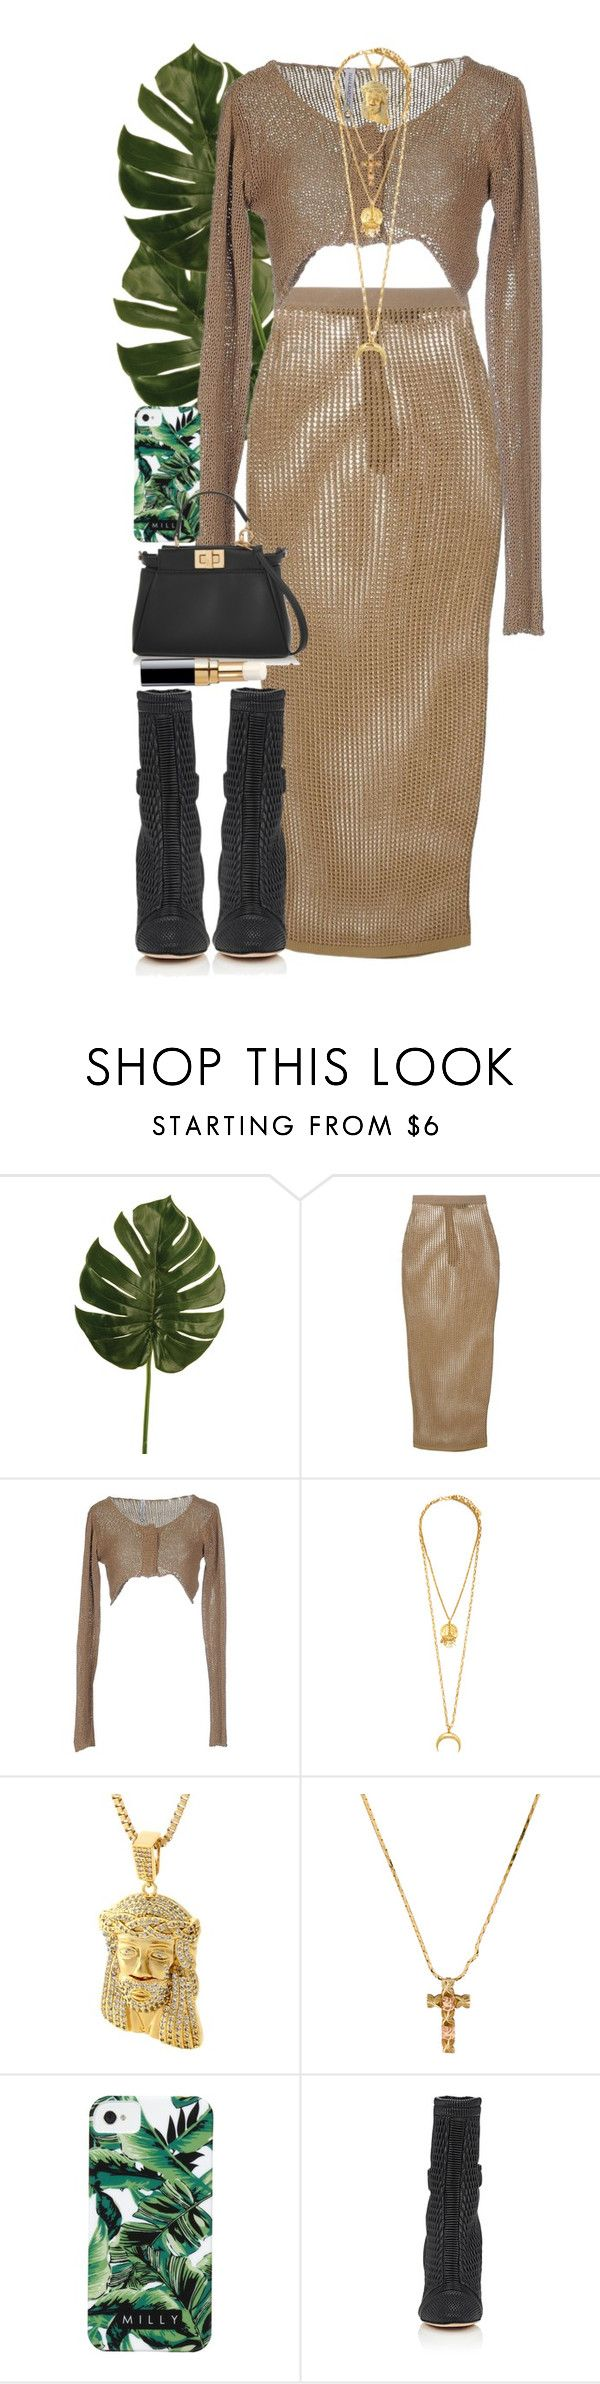 """""""Do not be angry with the rain; it simply does not know how to fall upwards."""" by quiche ❤ liked on Polyvore featuring Balmain, Pianurastudio, Elizabeth Cole, BillyTheTree, Milly, Fendi and Chanel"""